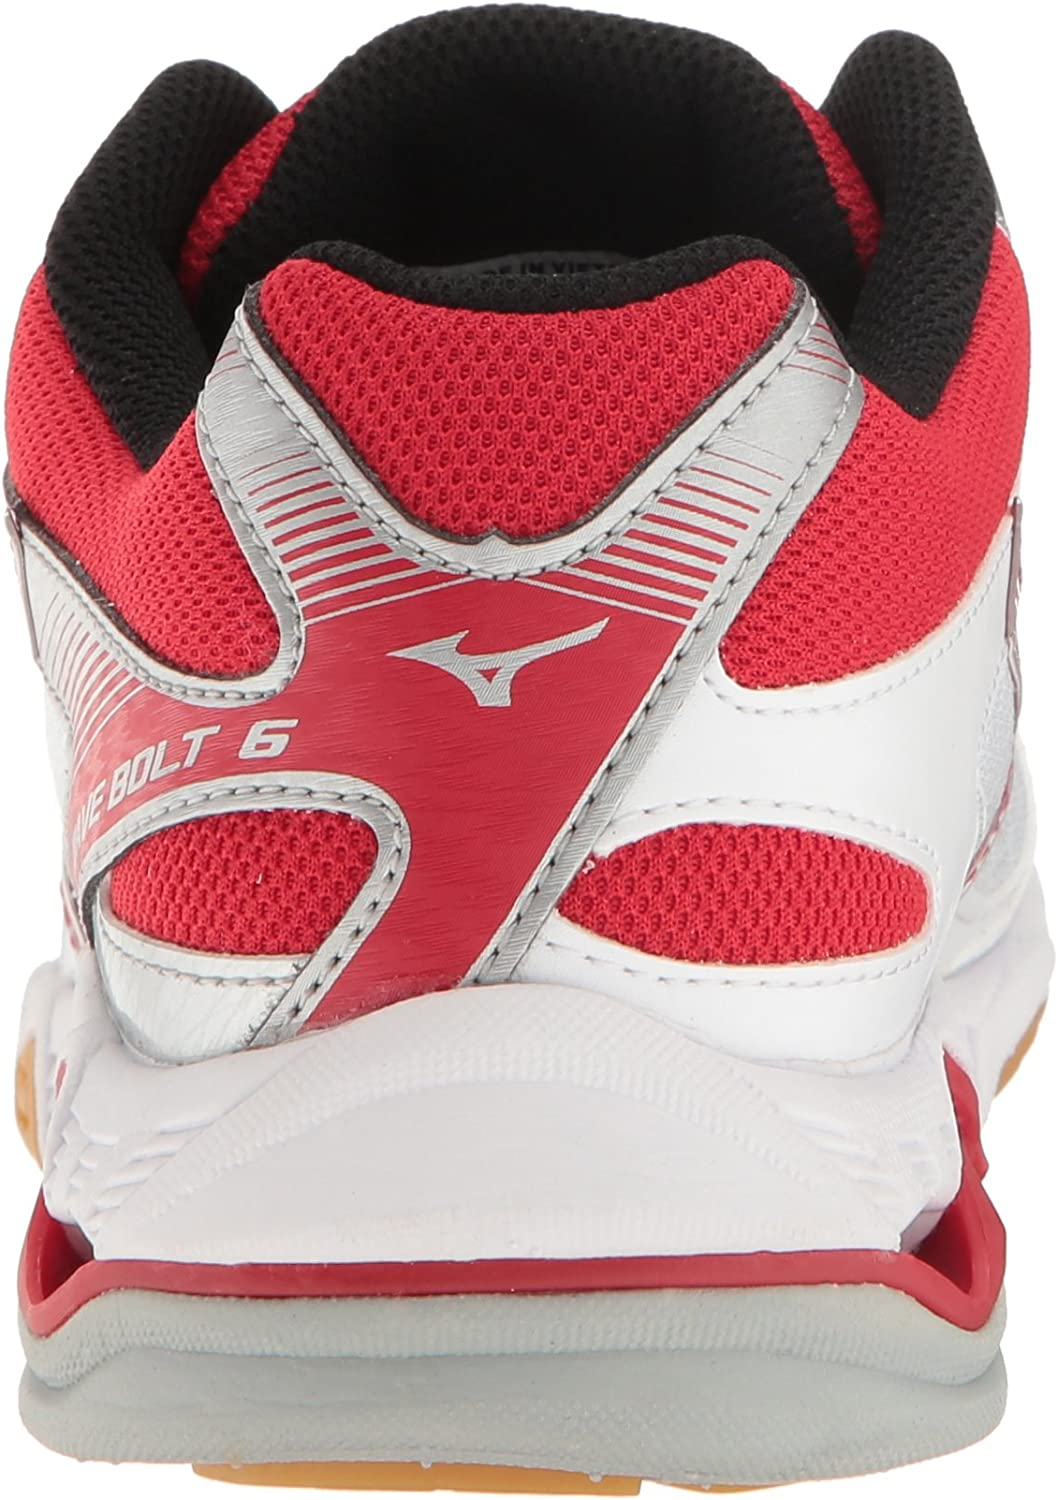 Mizuno Women's Wave Bolt 6 Volleyball-Shoes White/Red